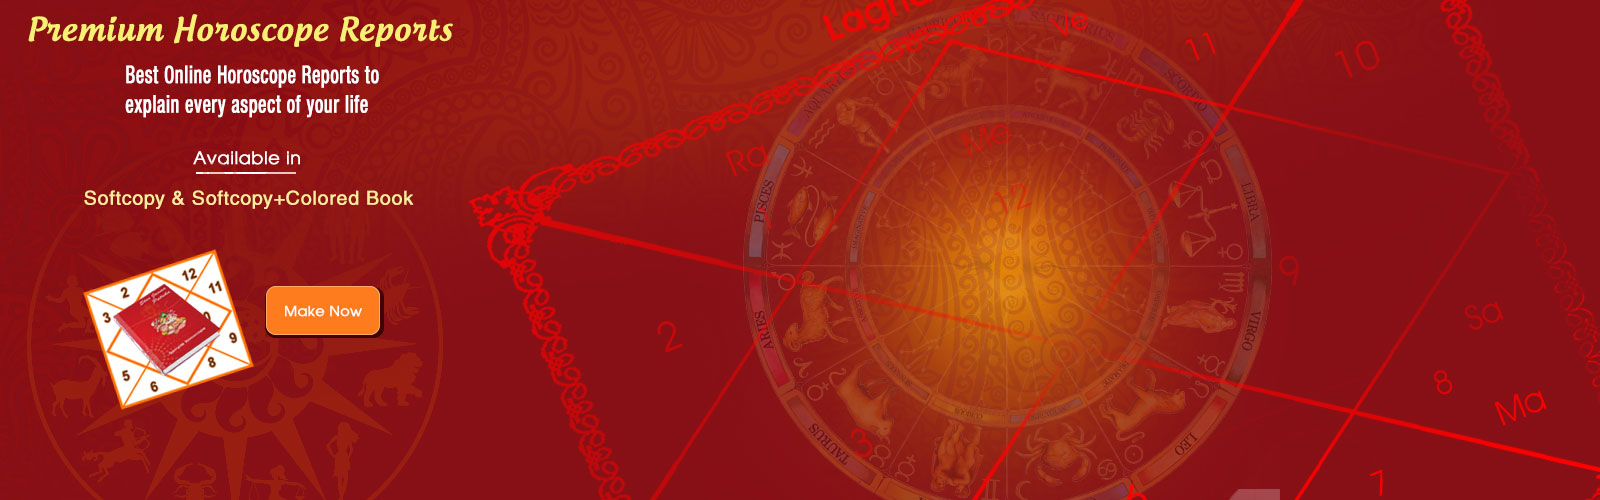 Premium horoscope: detail prediction covering all aspect of life